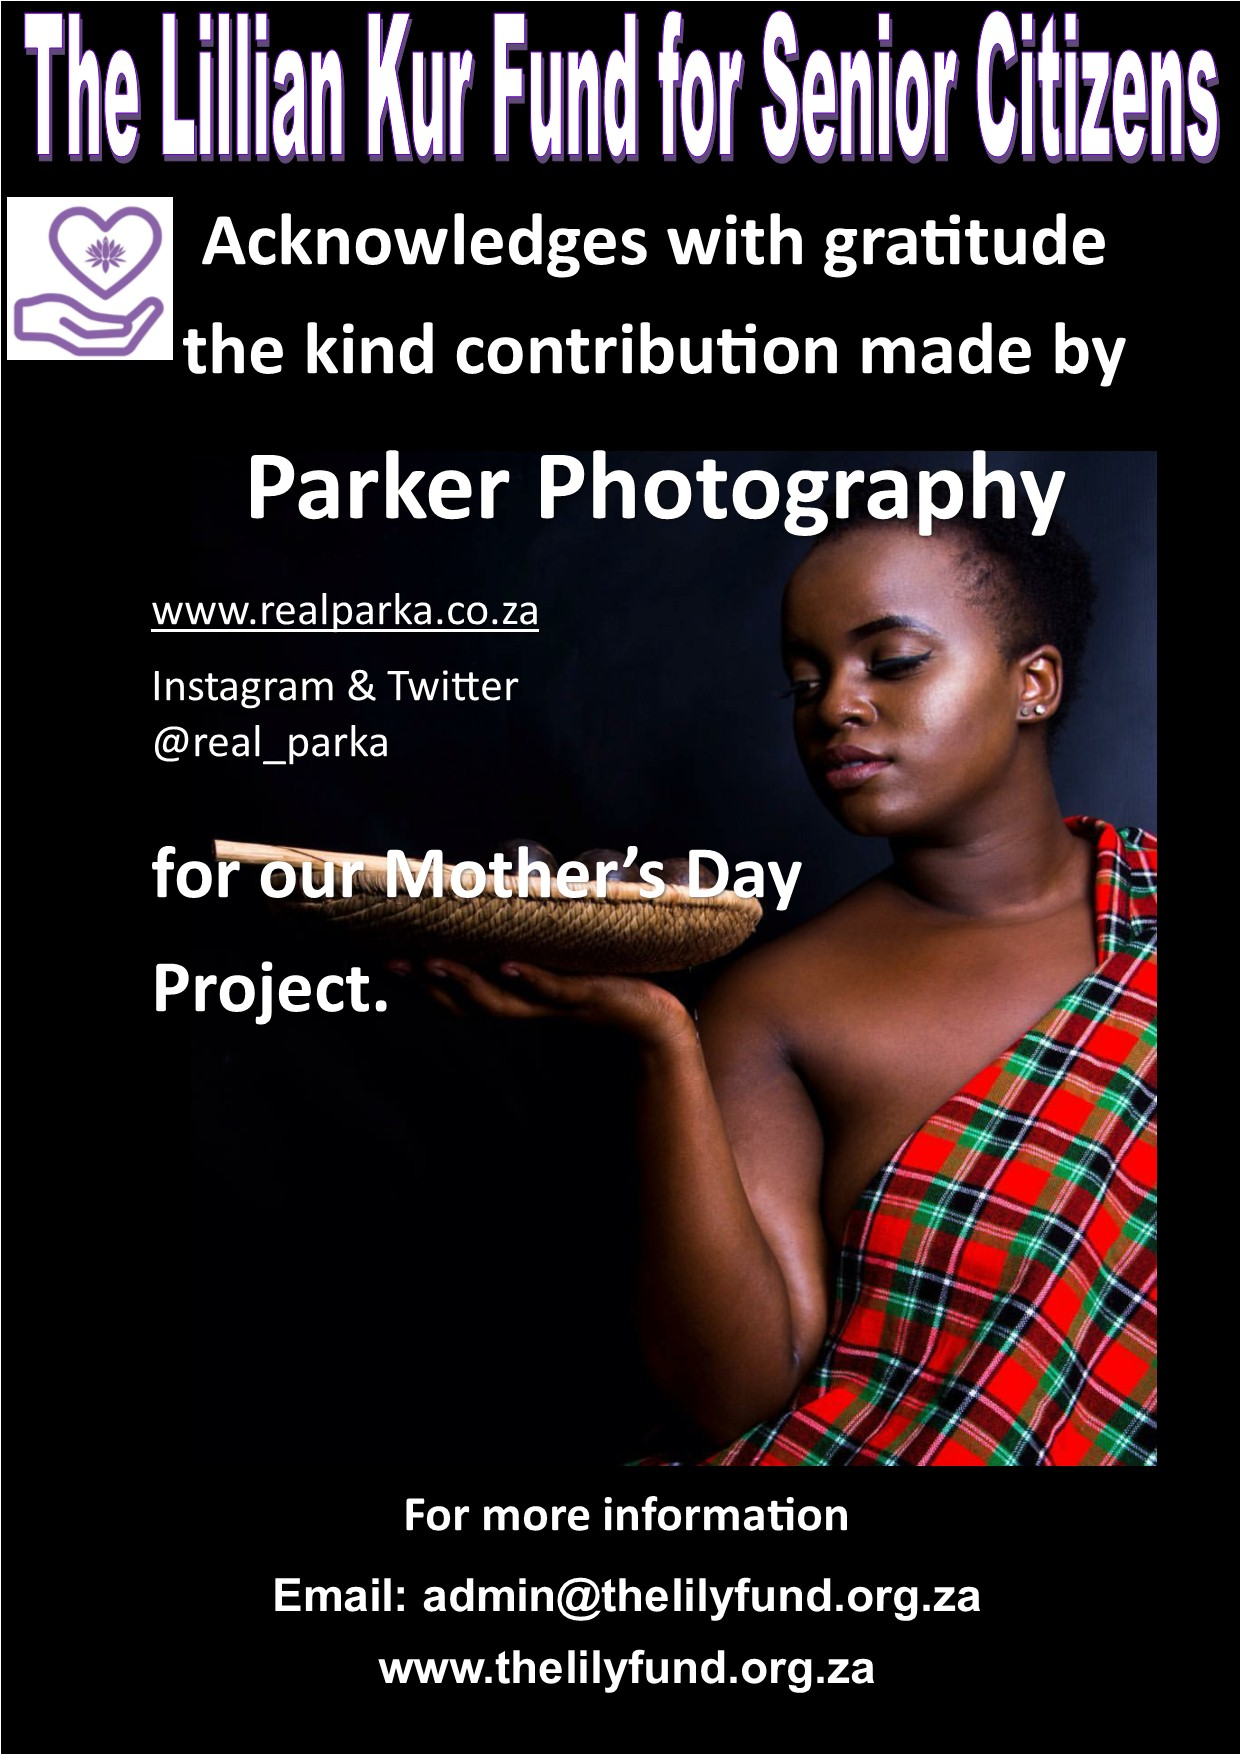 Parker Photography